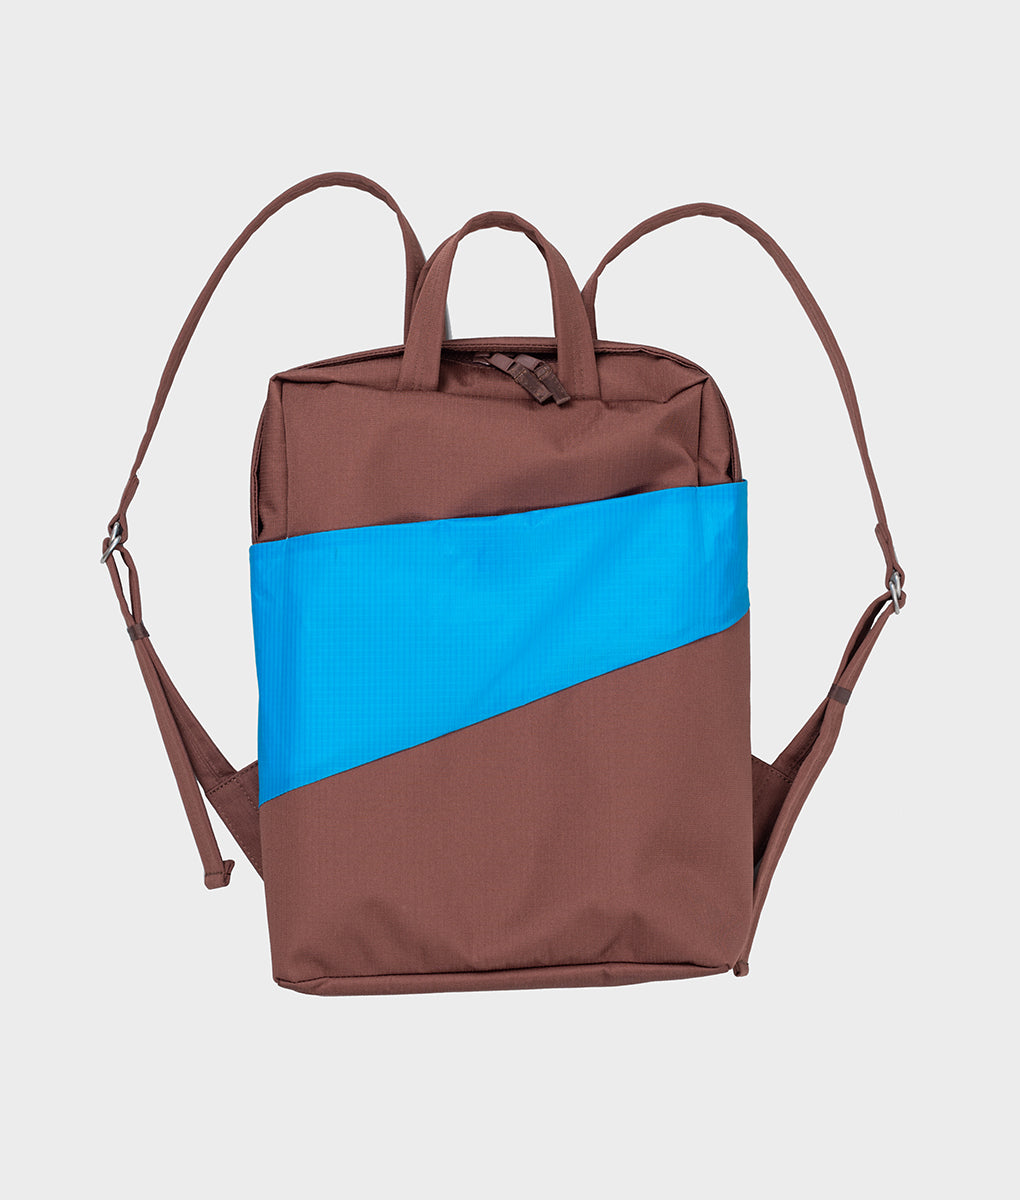 SusanBijl-Backpack-Brown-SkyBlue-03